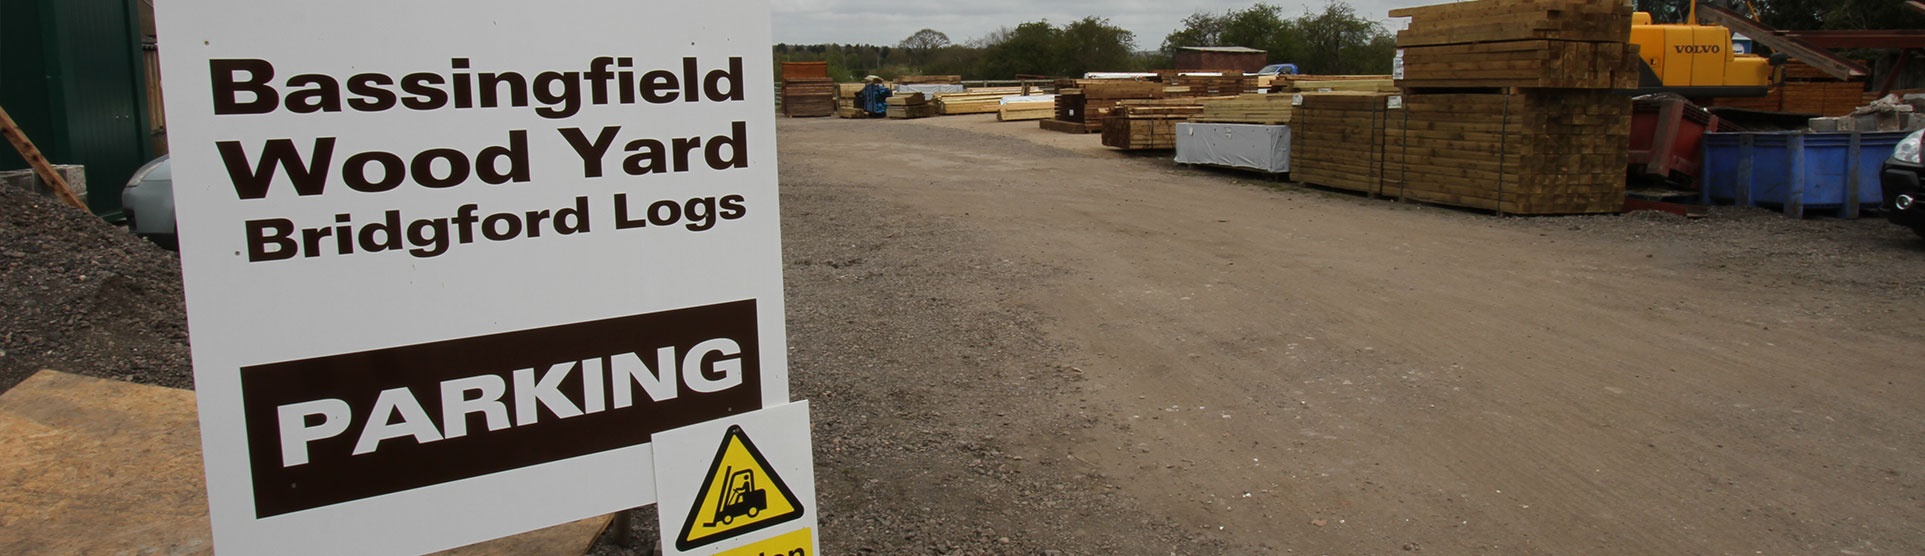 bassingfield woodyard timber merchants nottingham